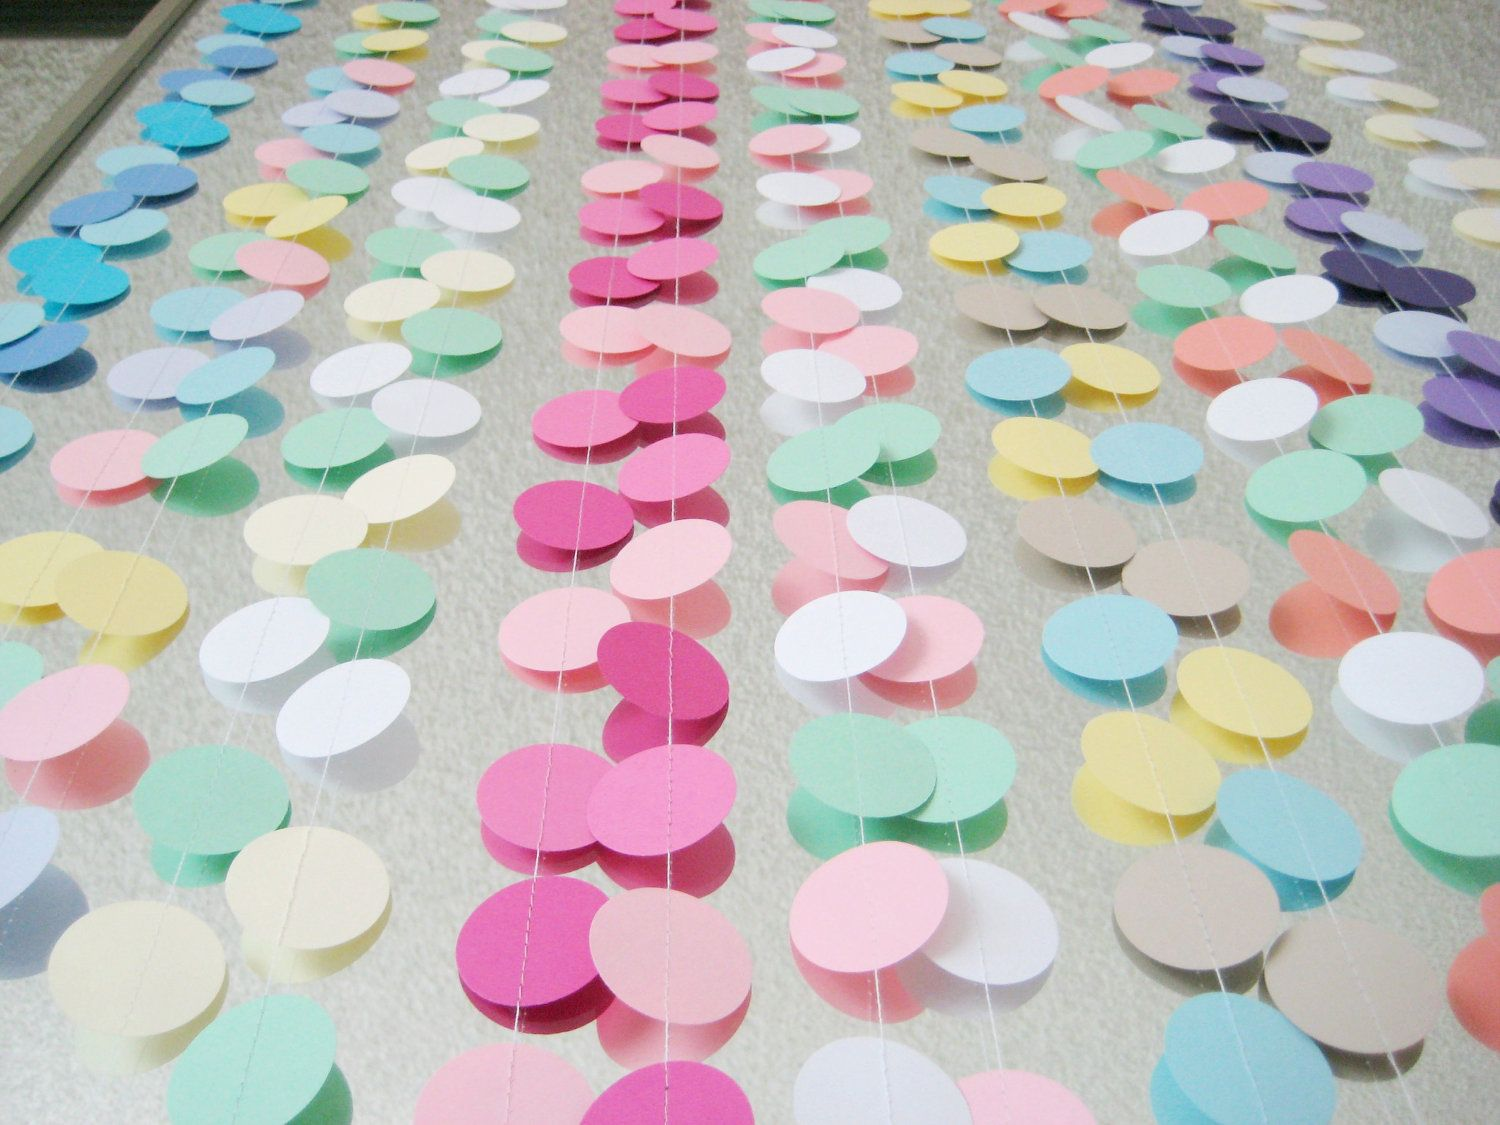 Wedding decorations paper  Teal Coral Yellow  ft Circle Paper Garland Party Decorations